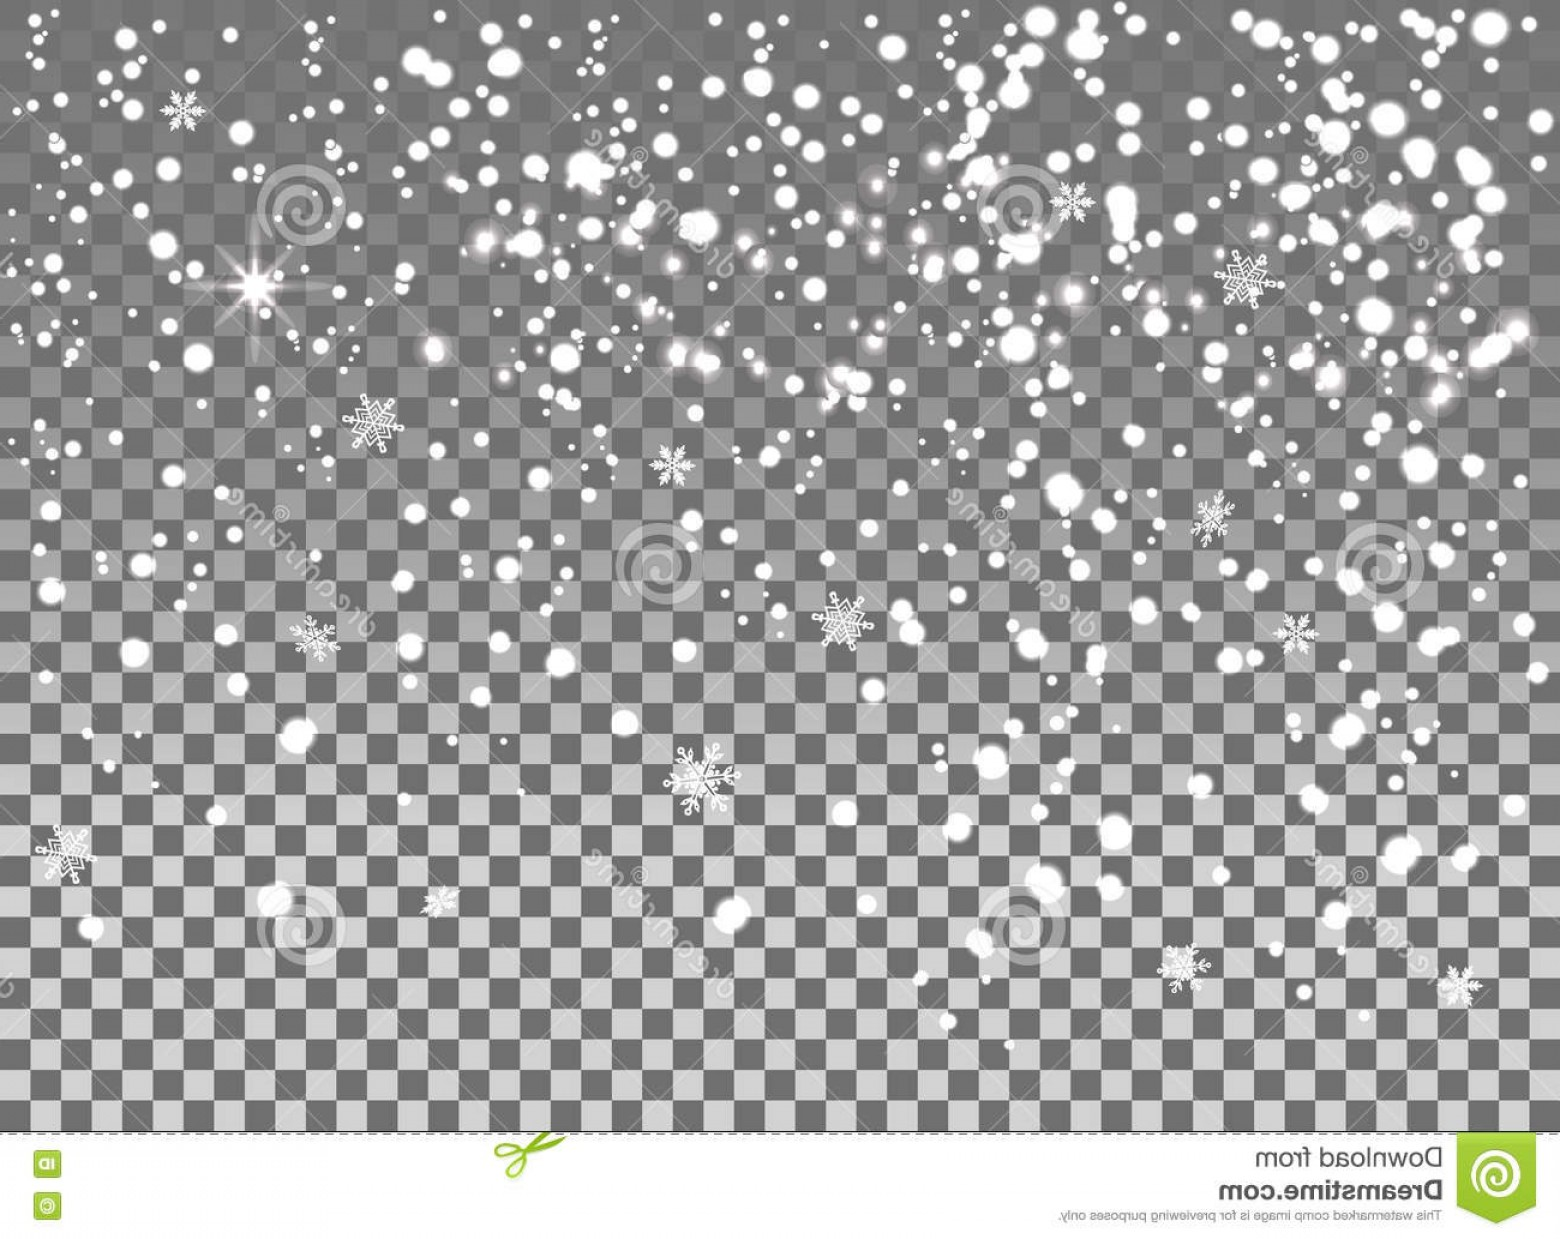 Snow Falling Vector Free: Stock Illustration Falling Snow Isolated Transparent Background Snowflakes Snowfall Celebration Banner Christmas New Year Winter Image